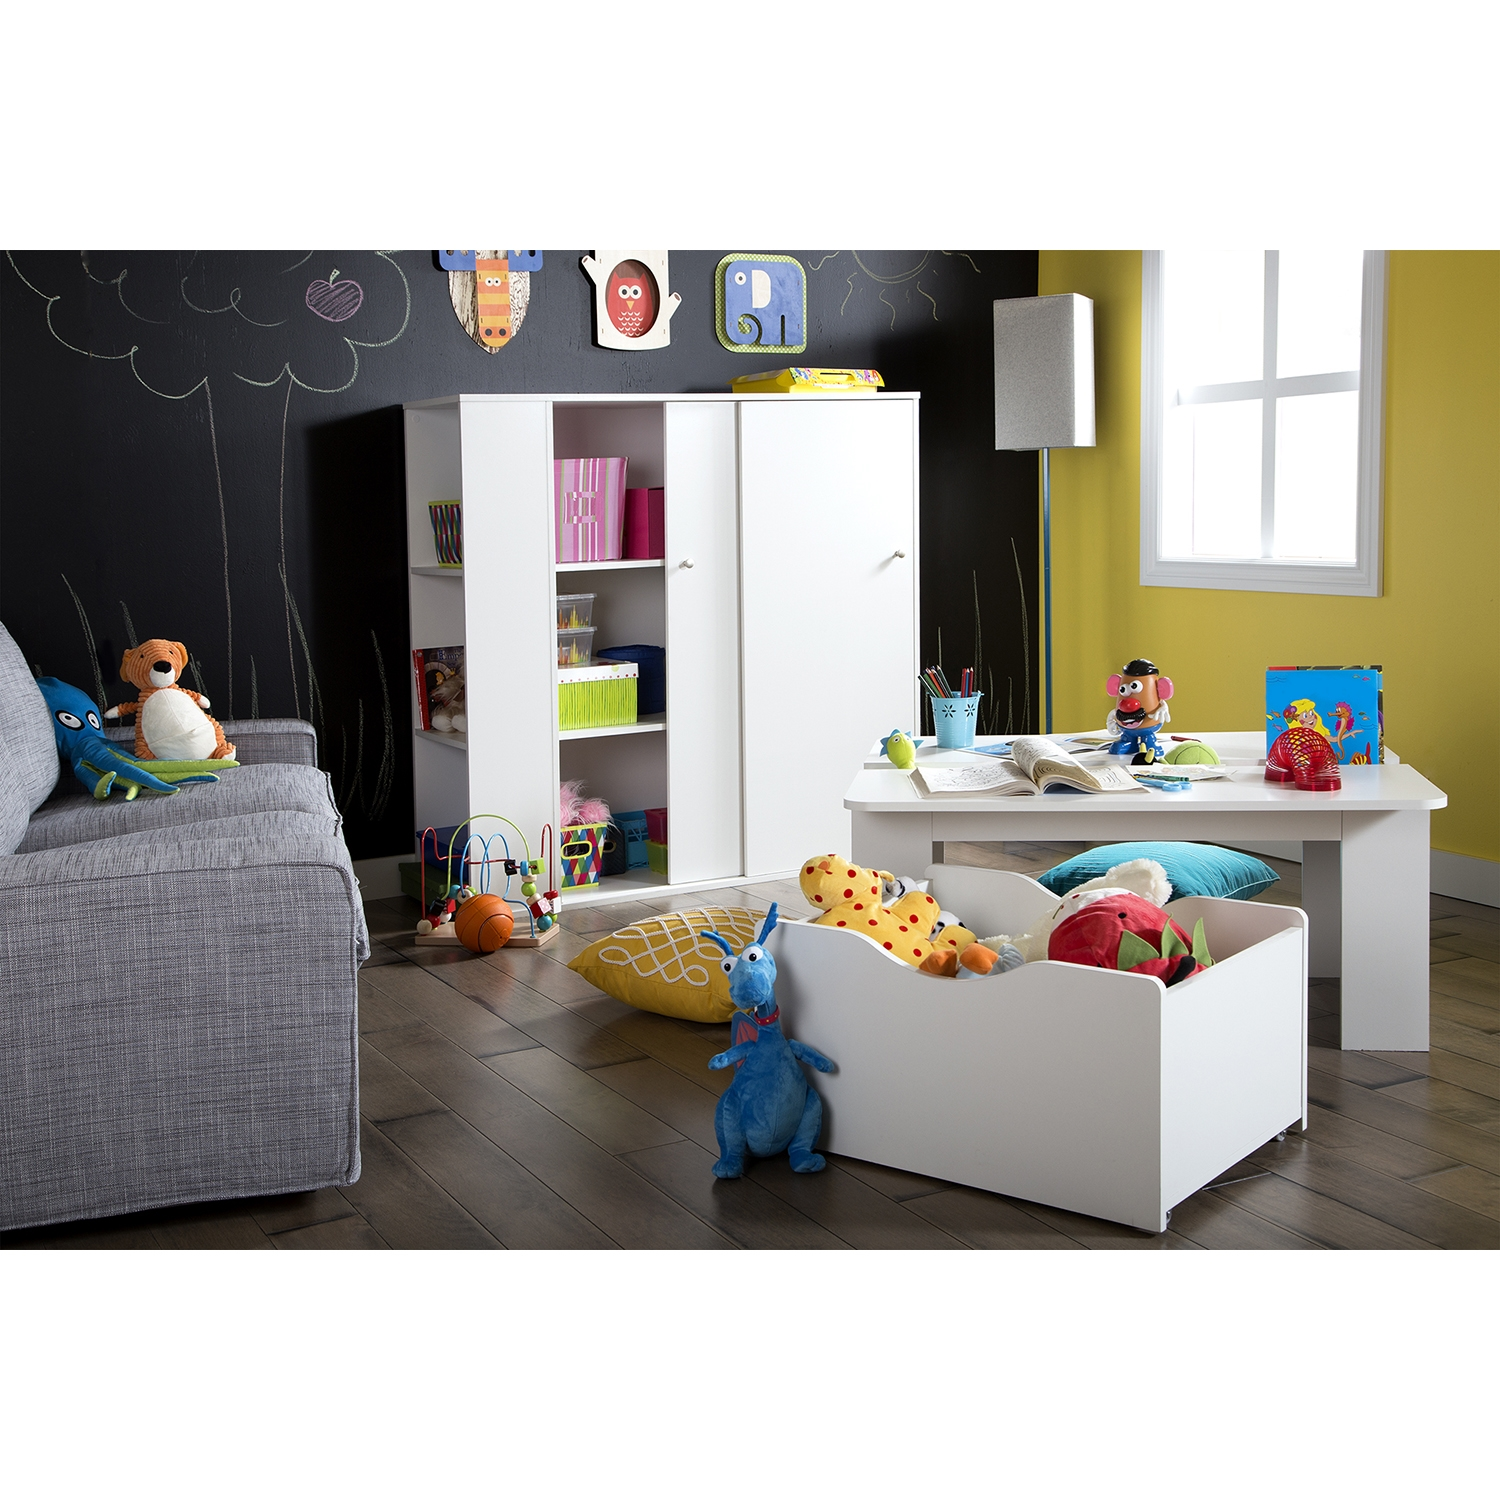 Storit Kids Activity Table - Toy Box On Wheels, Pure White - SS-5050052